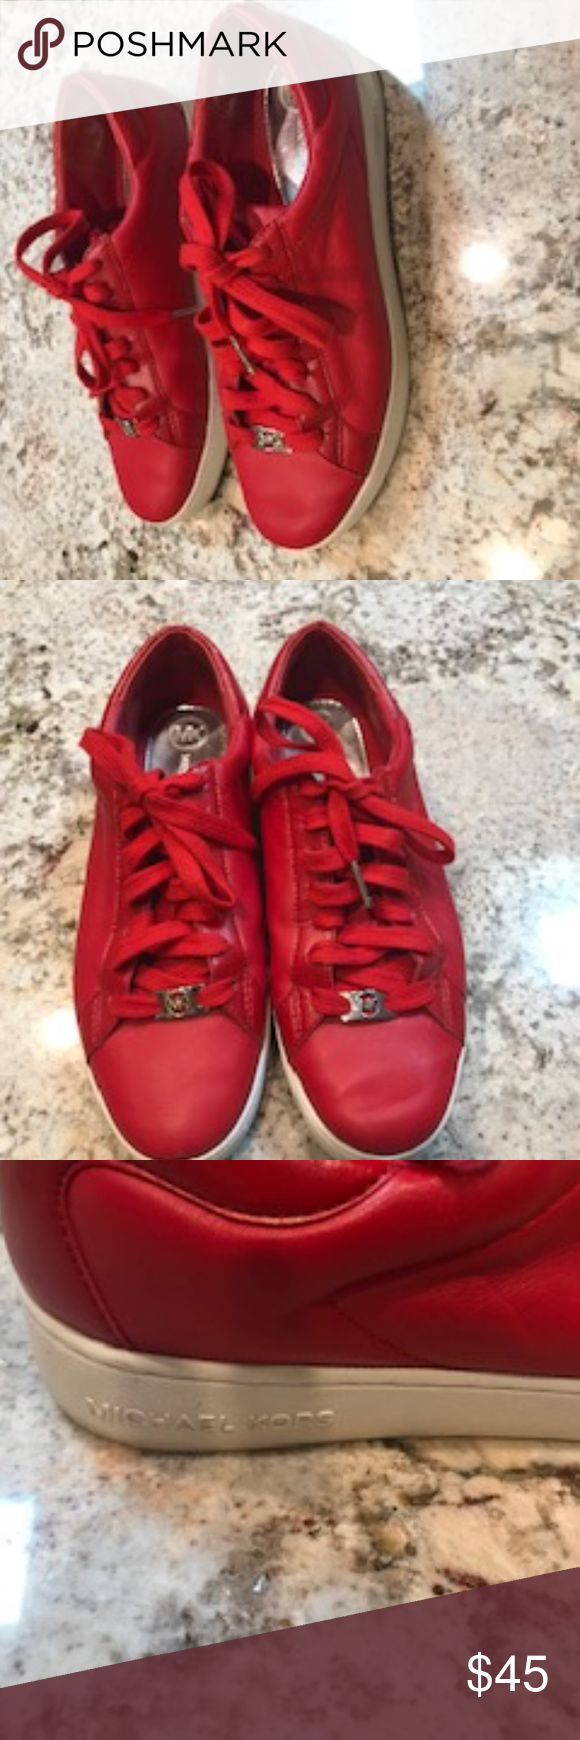 Michael Kors Red Tennis Shoes - George